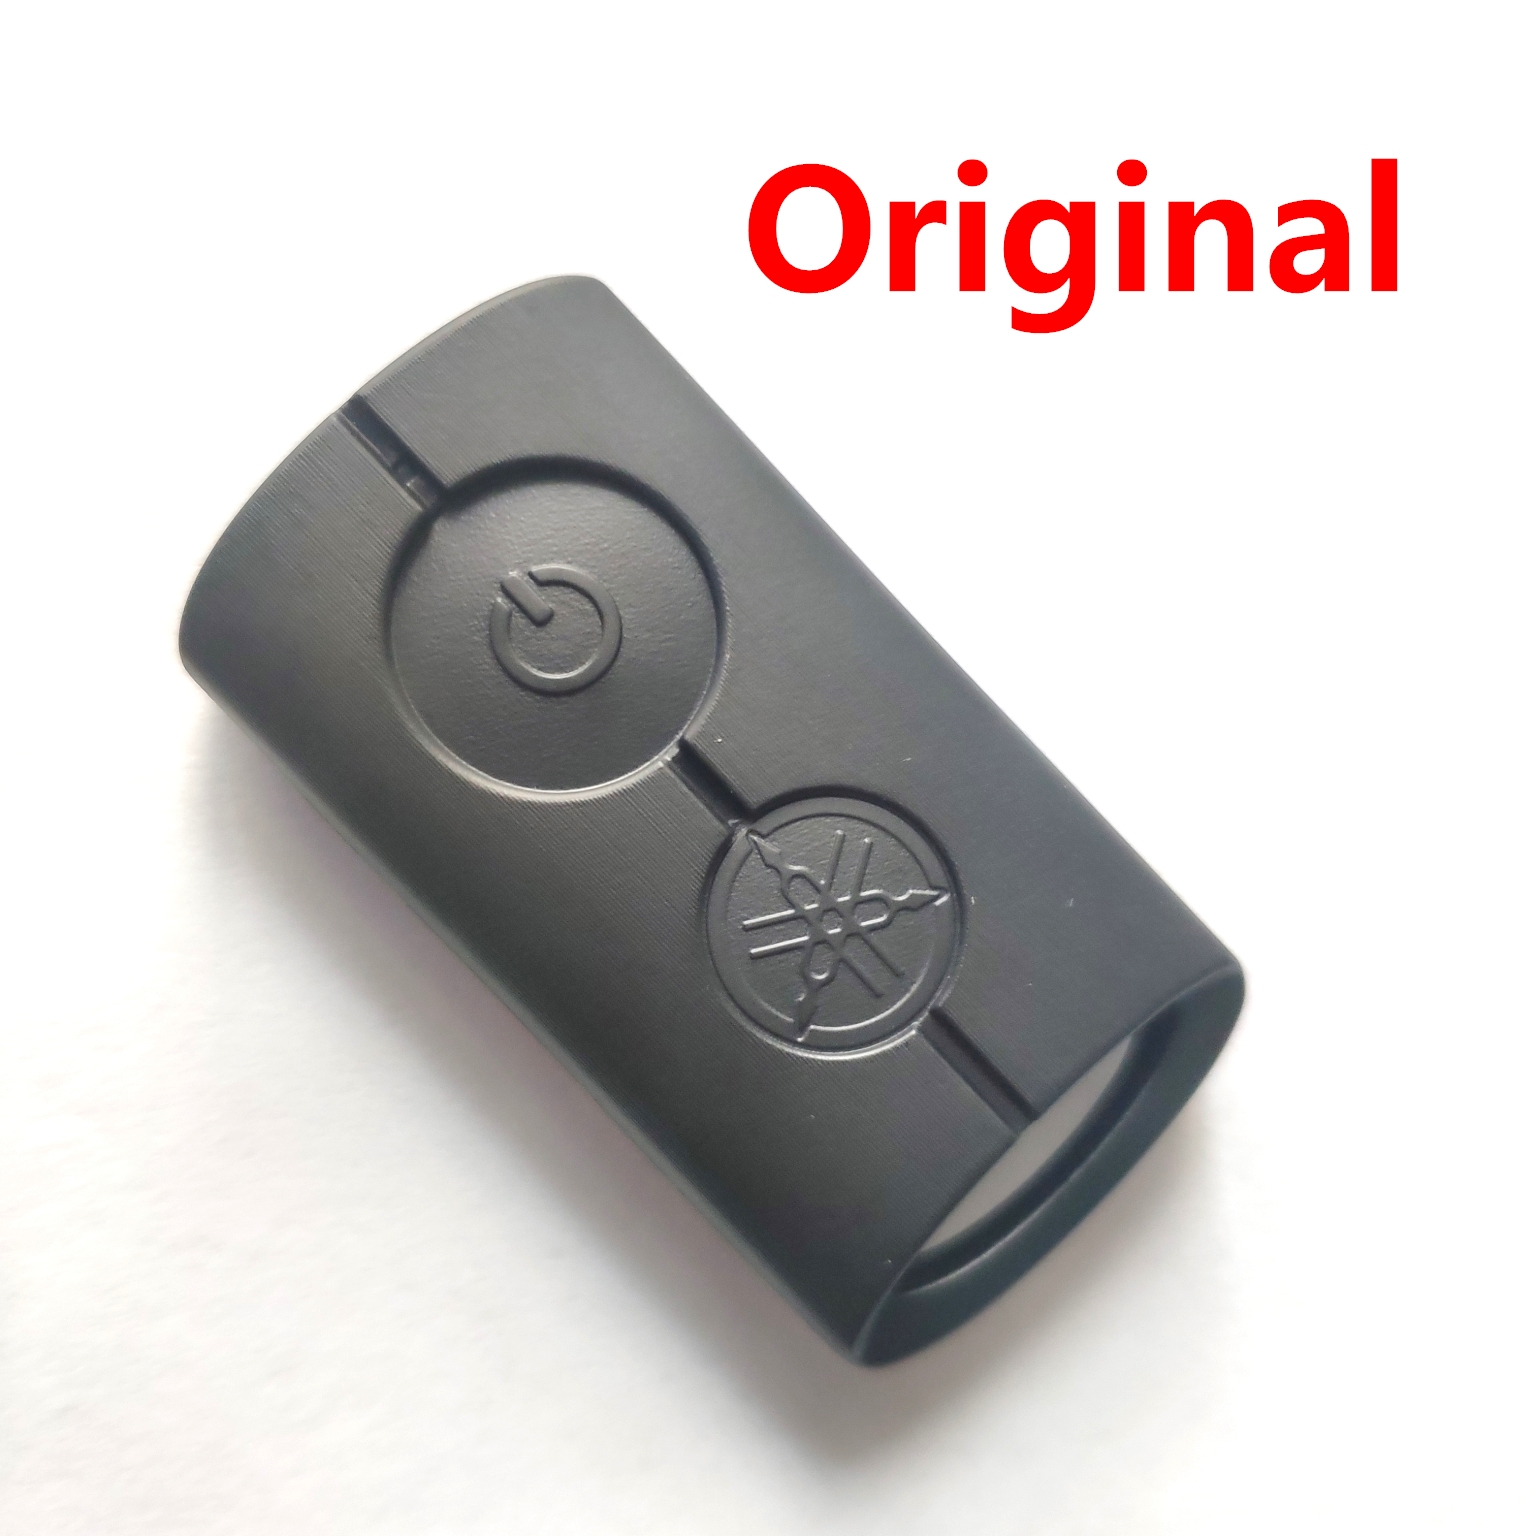 Original 2 Buttons Smart Key Yamaha Motorcycle